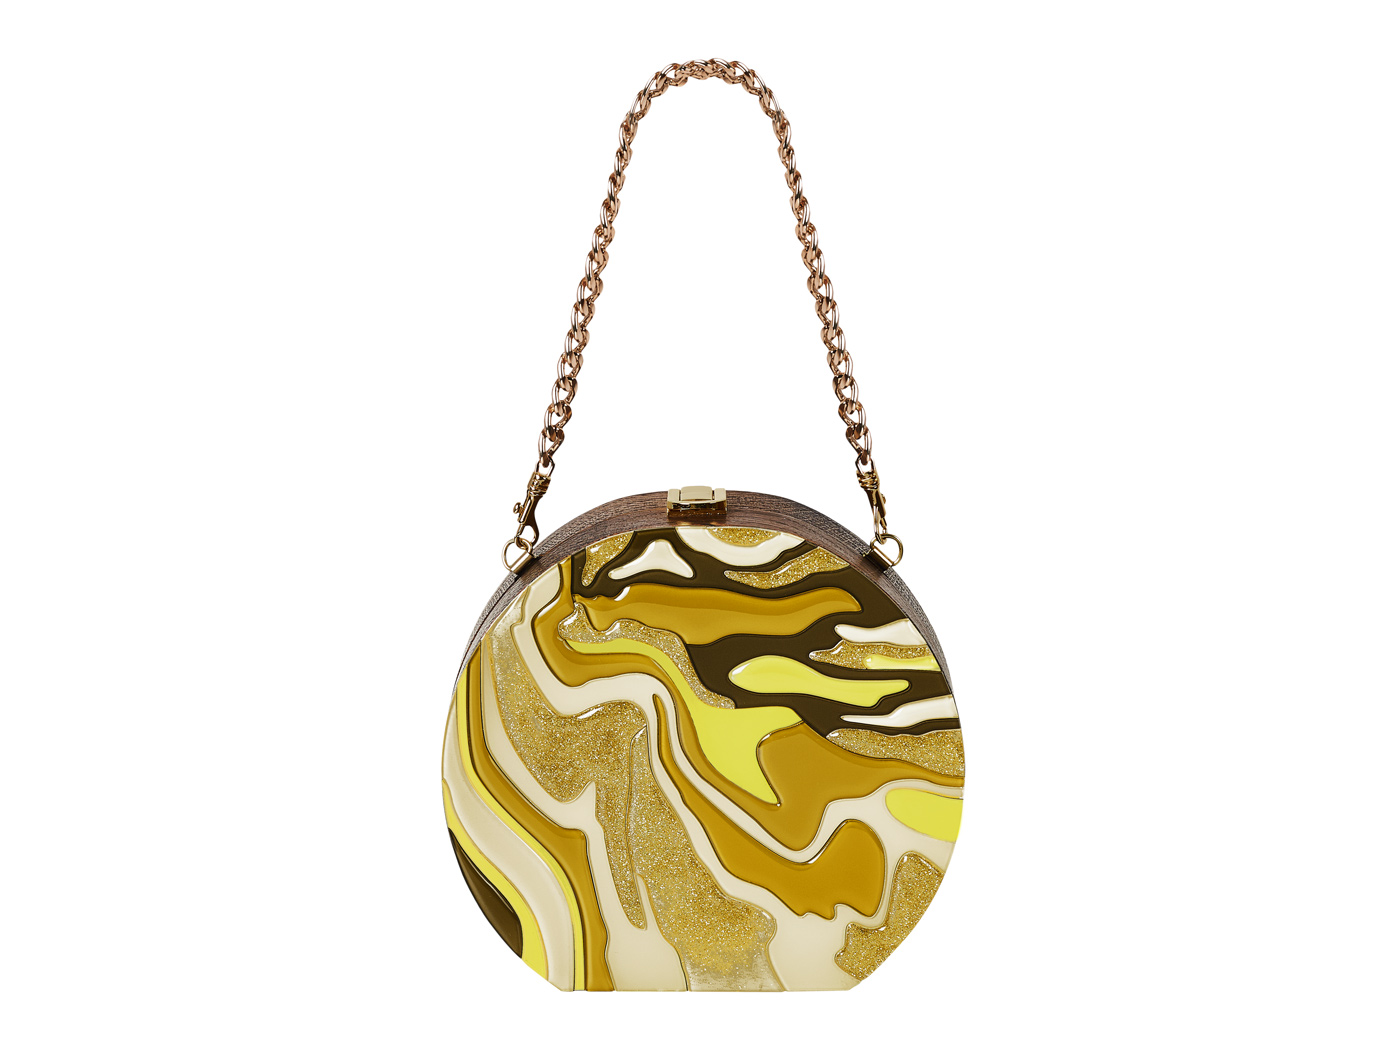 Golovina-marble-clutch-bag-mustard-and-yellow-4